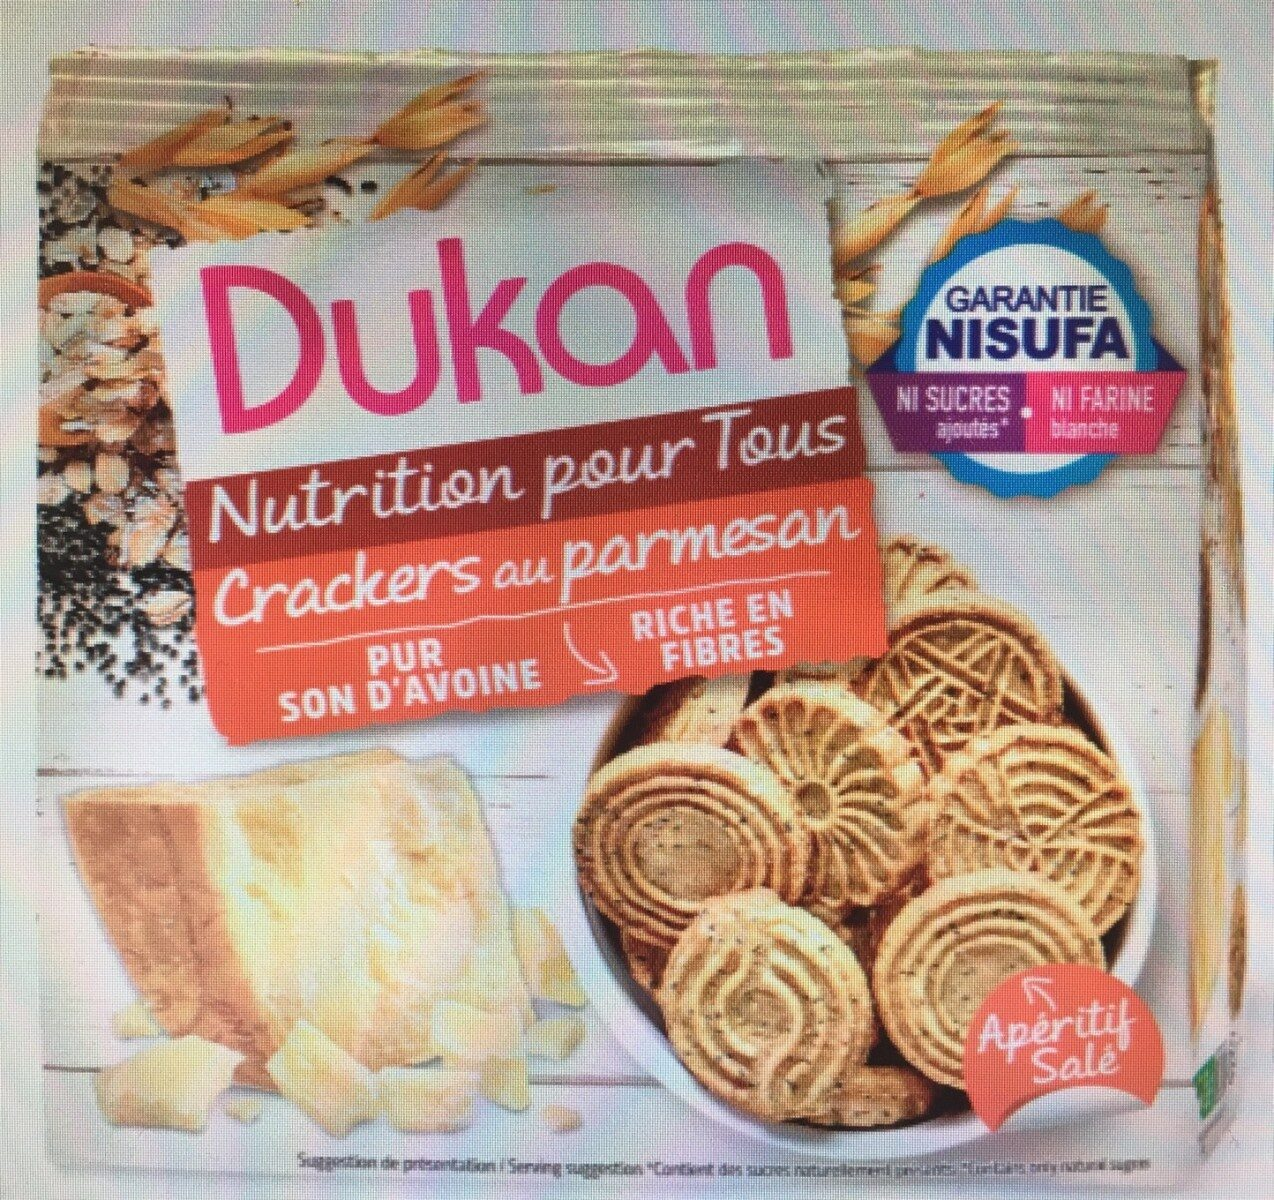 Crackers au parmesan - Product